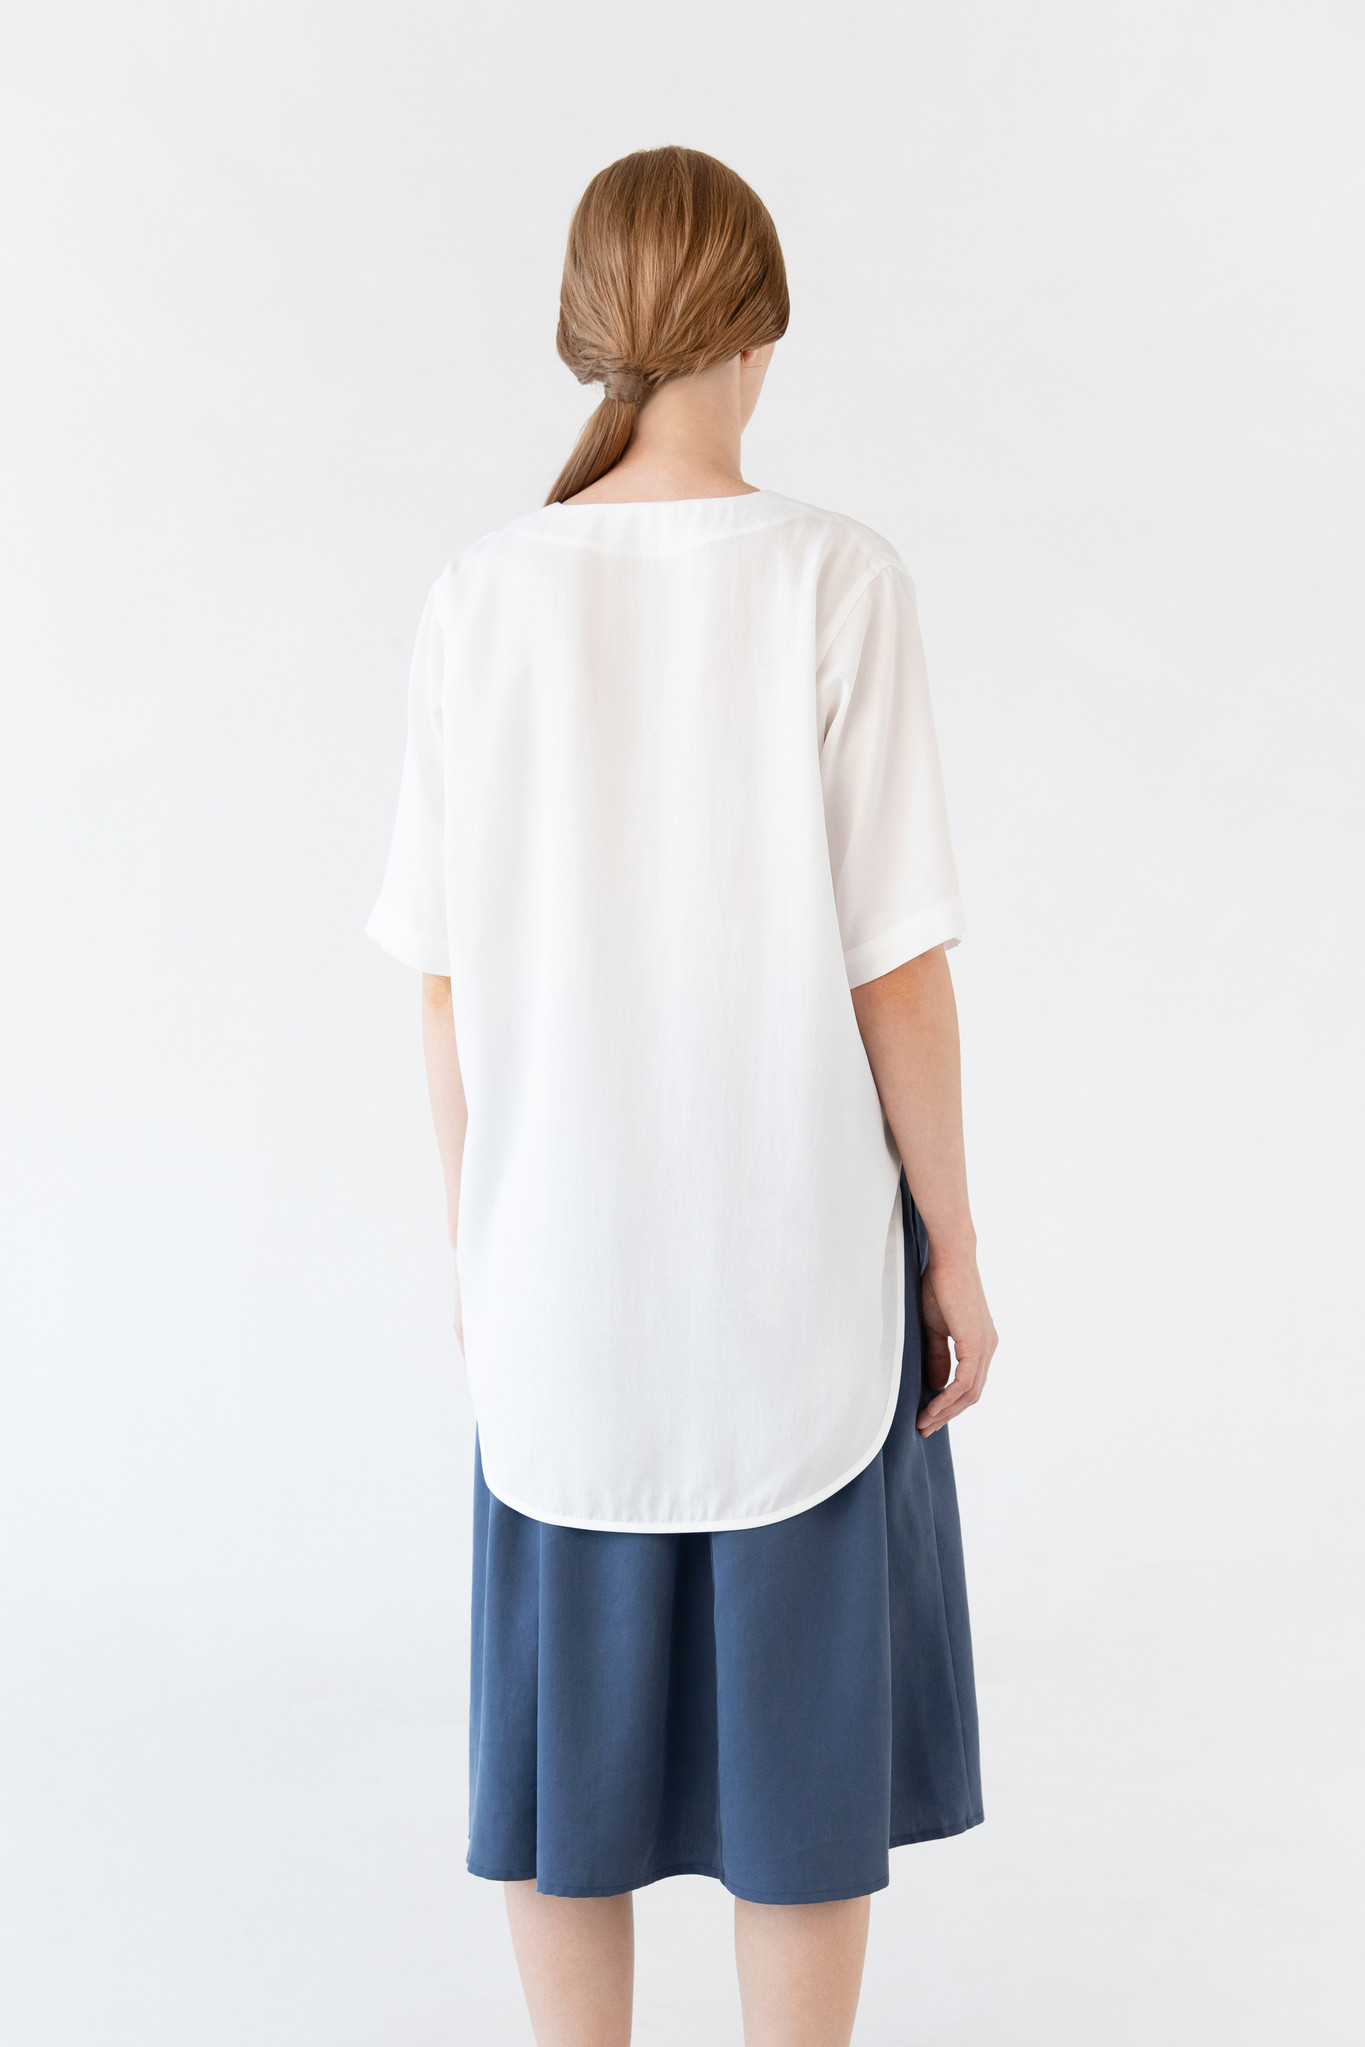 Blouse with rounded hem made of tencel - blue-4